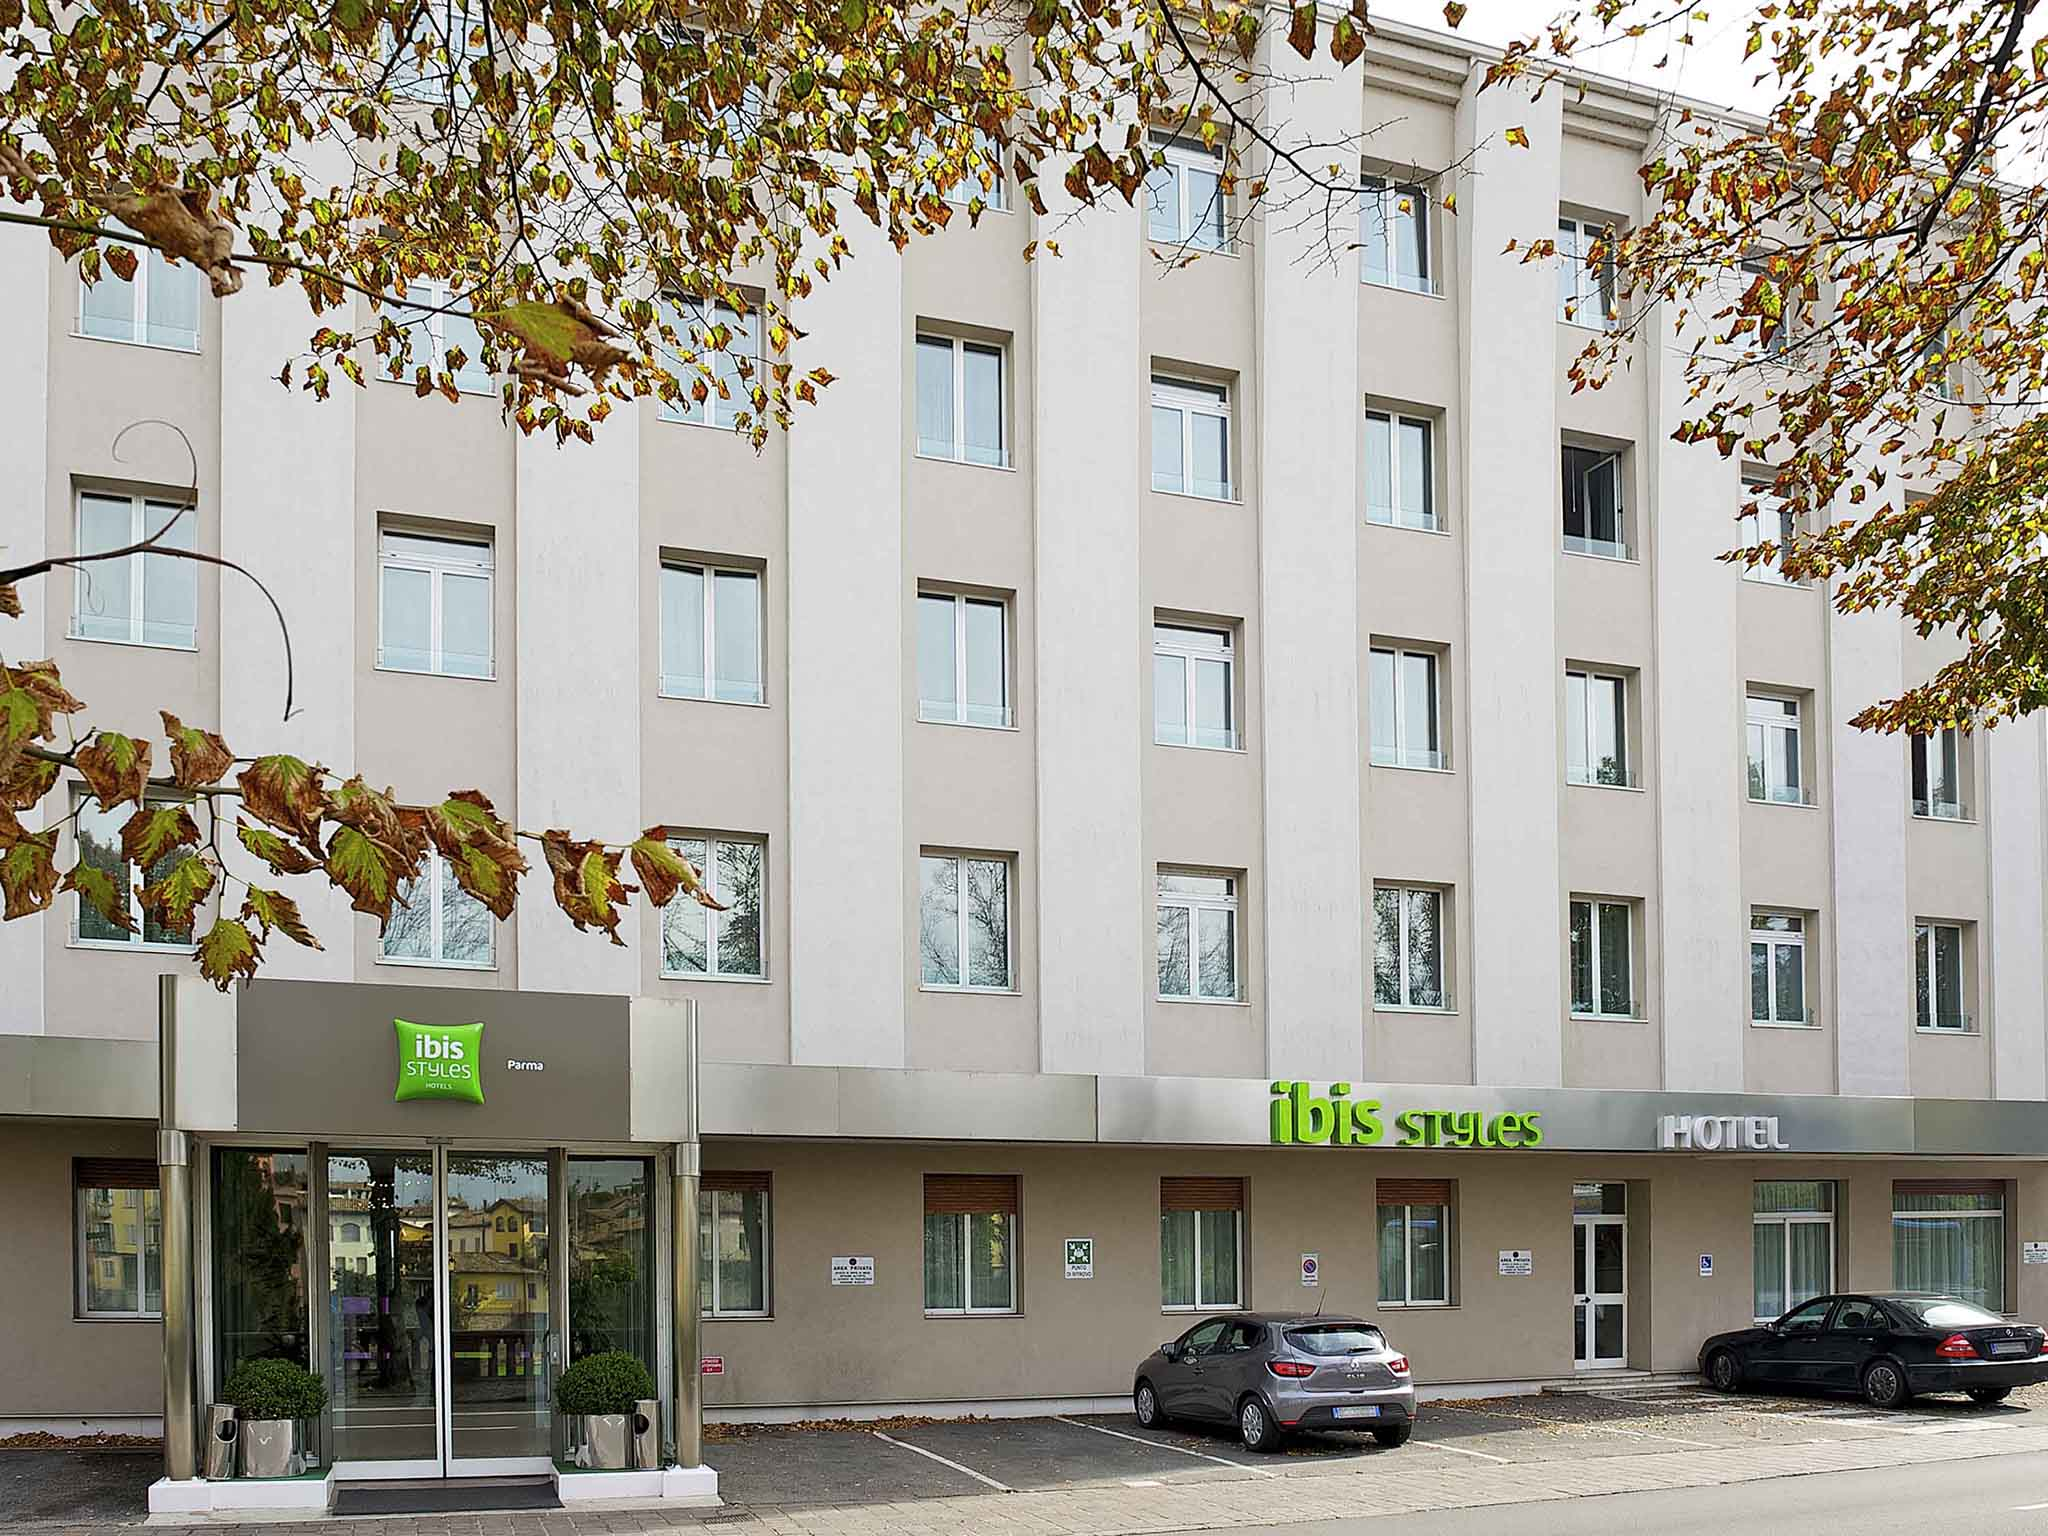 Hotell – ibis Styles Parma Toscanini